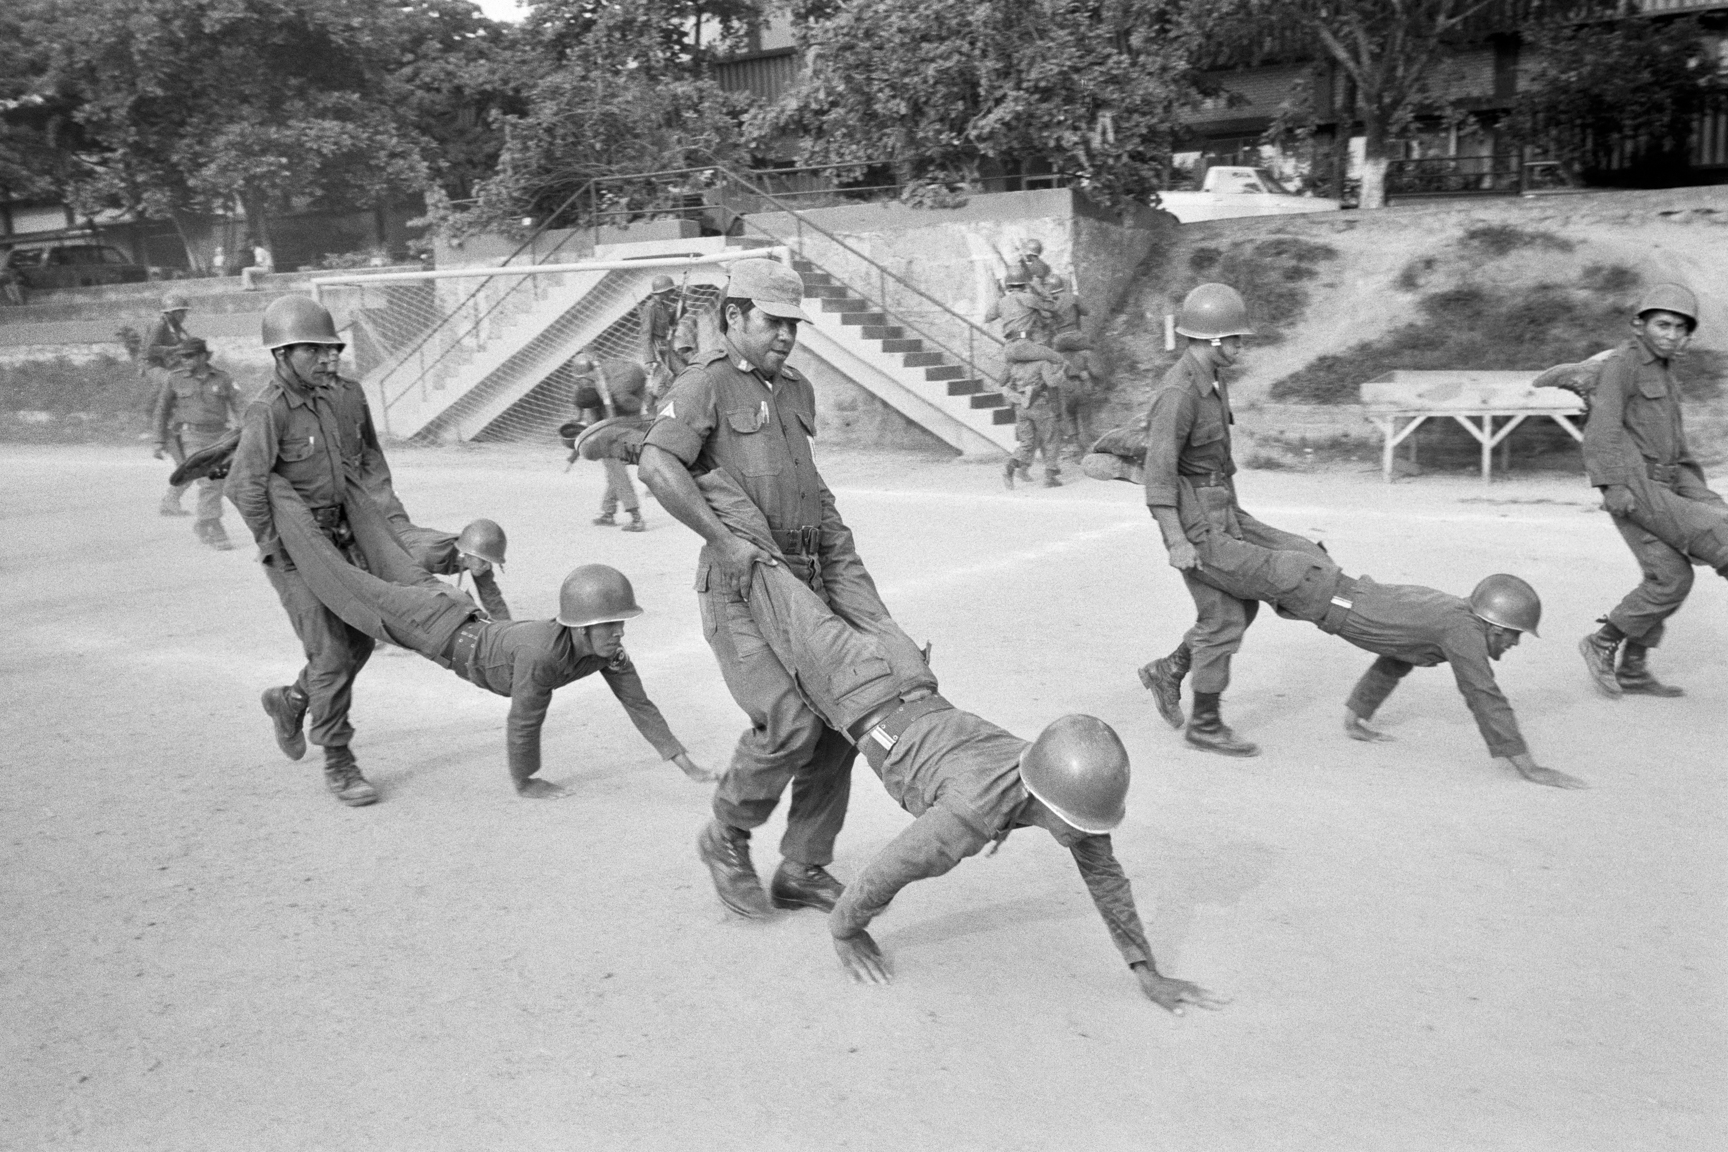 Salvadoran Army recruits practice teamwork drills led by a Salvadoran officer trained at Fort Benning, Georgia in the United States July 1982 at an army base in San Miguel, El Salvador. At the time, the country was engaged in what became a 13-year Civil War between successive right-wing governments (backed by the US and others) and various armed guerrilla factions that eventually claimed over 75,000 lives before ending in 1992.